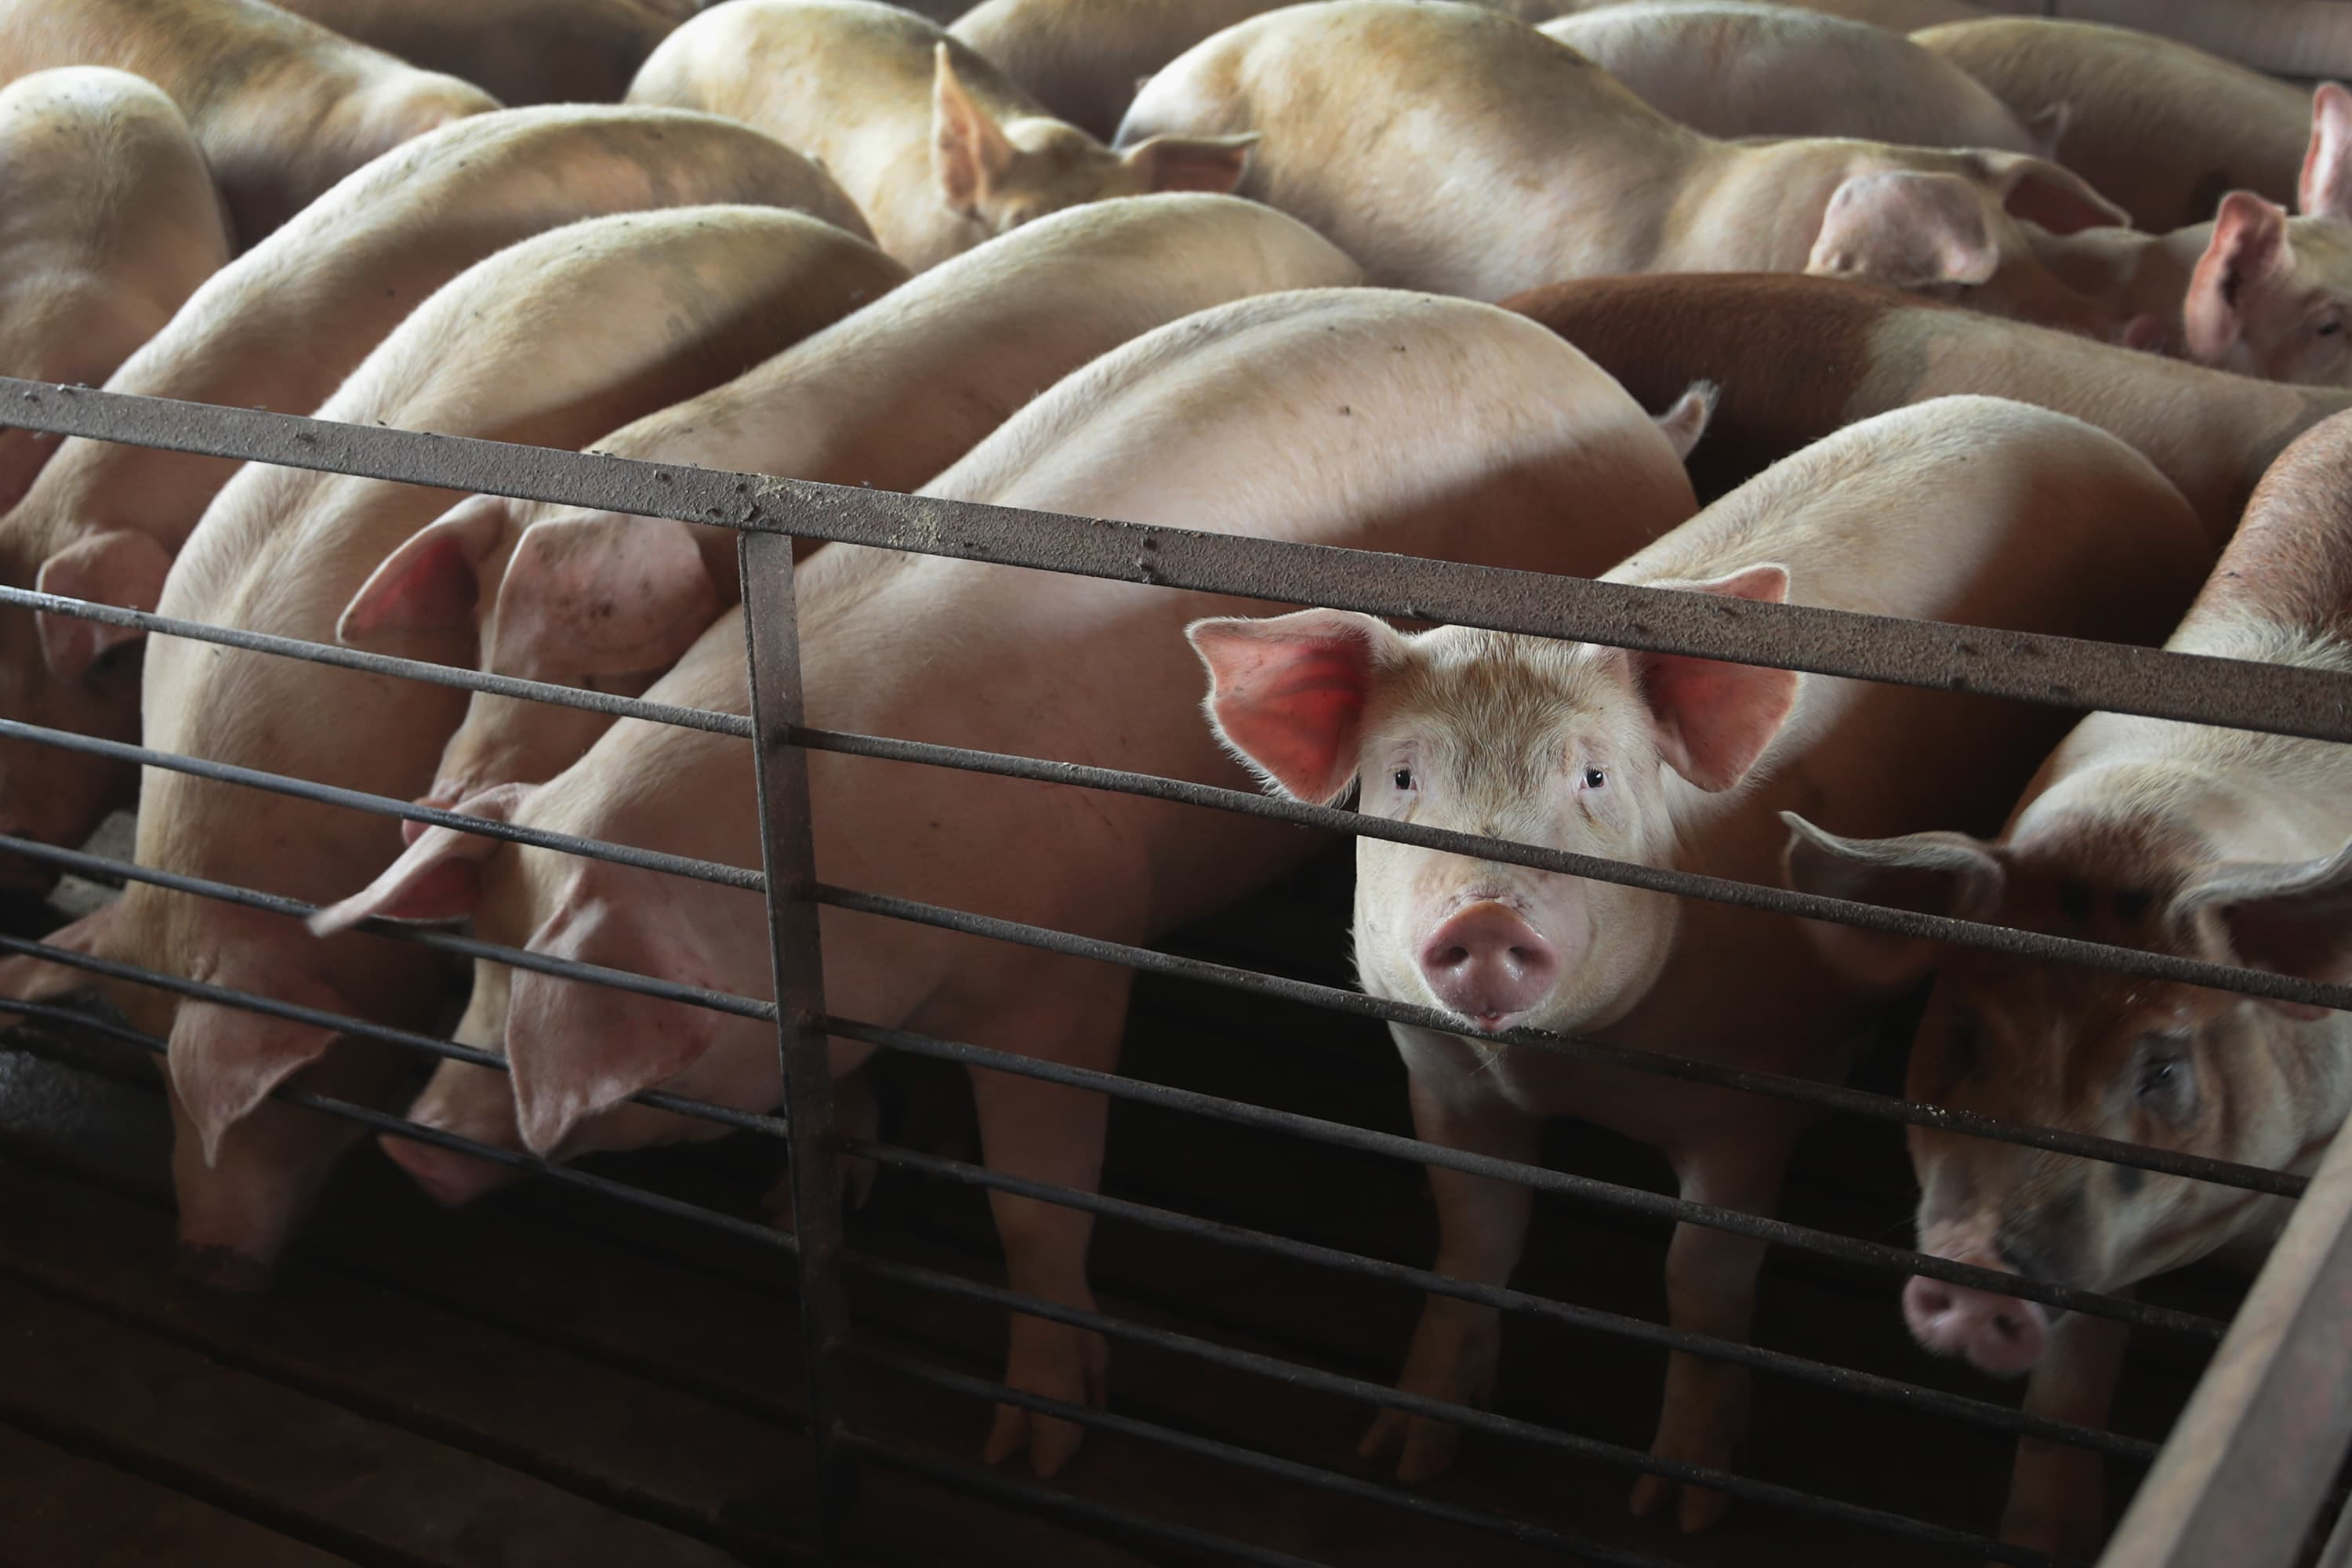 Trump's deal with Mexico and Canada is welcome news for American pork producers hit by US-China trade war